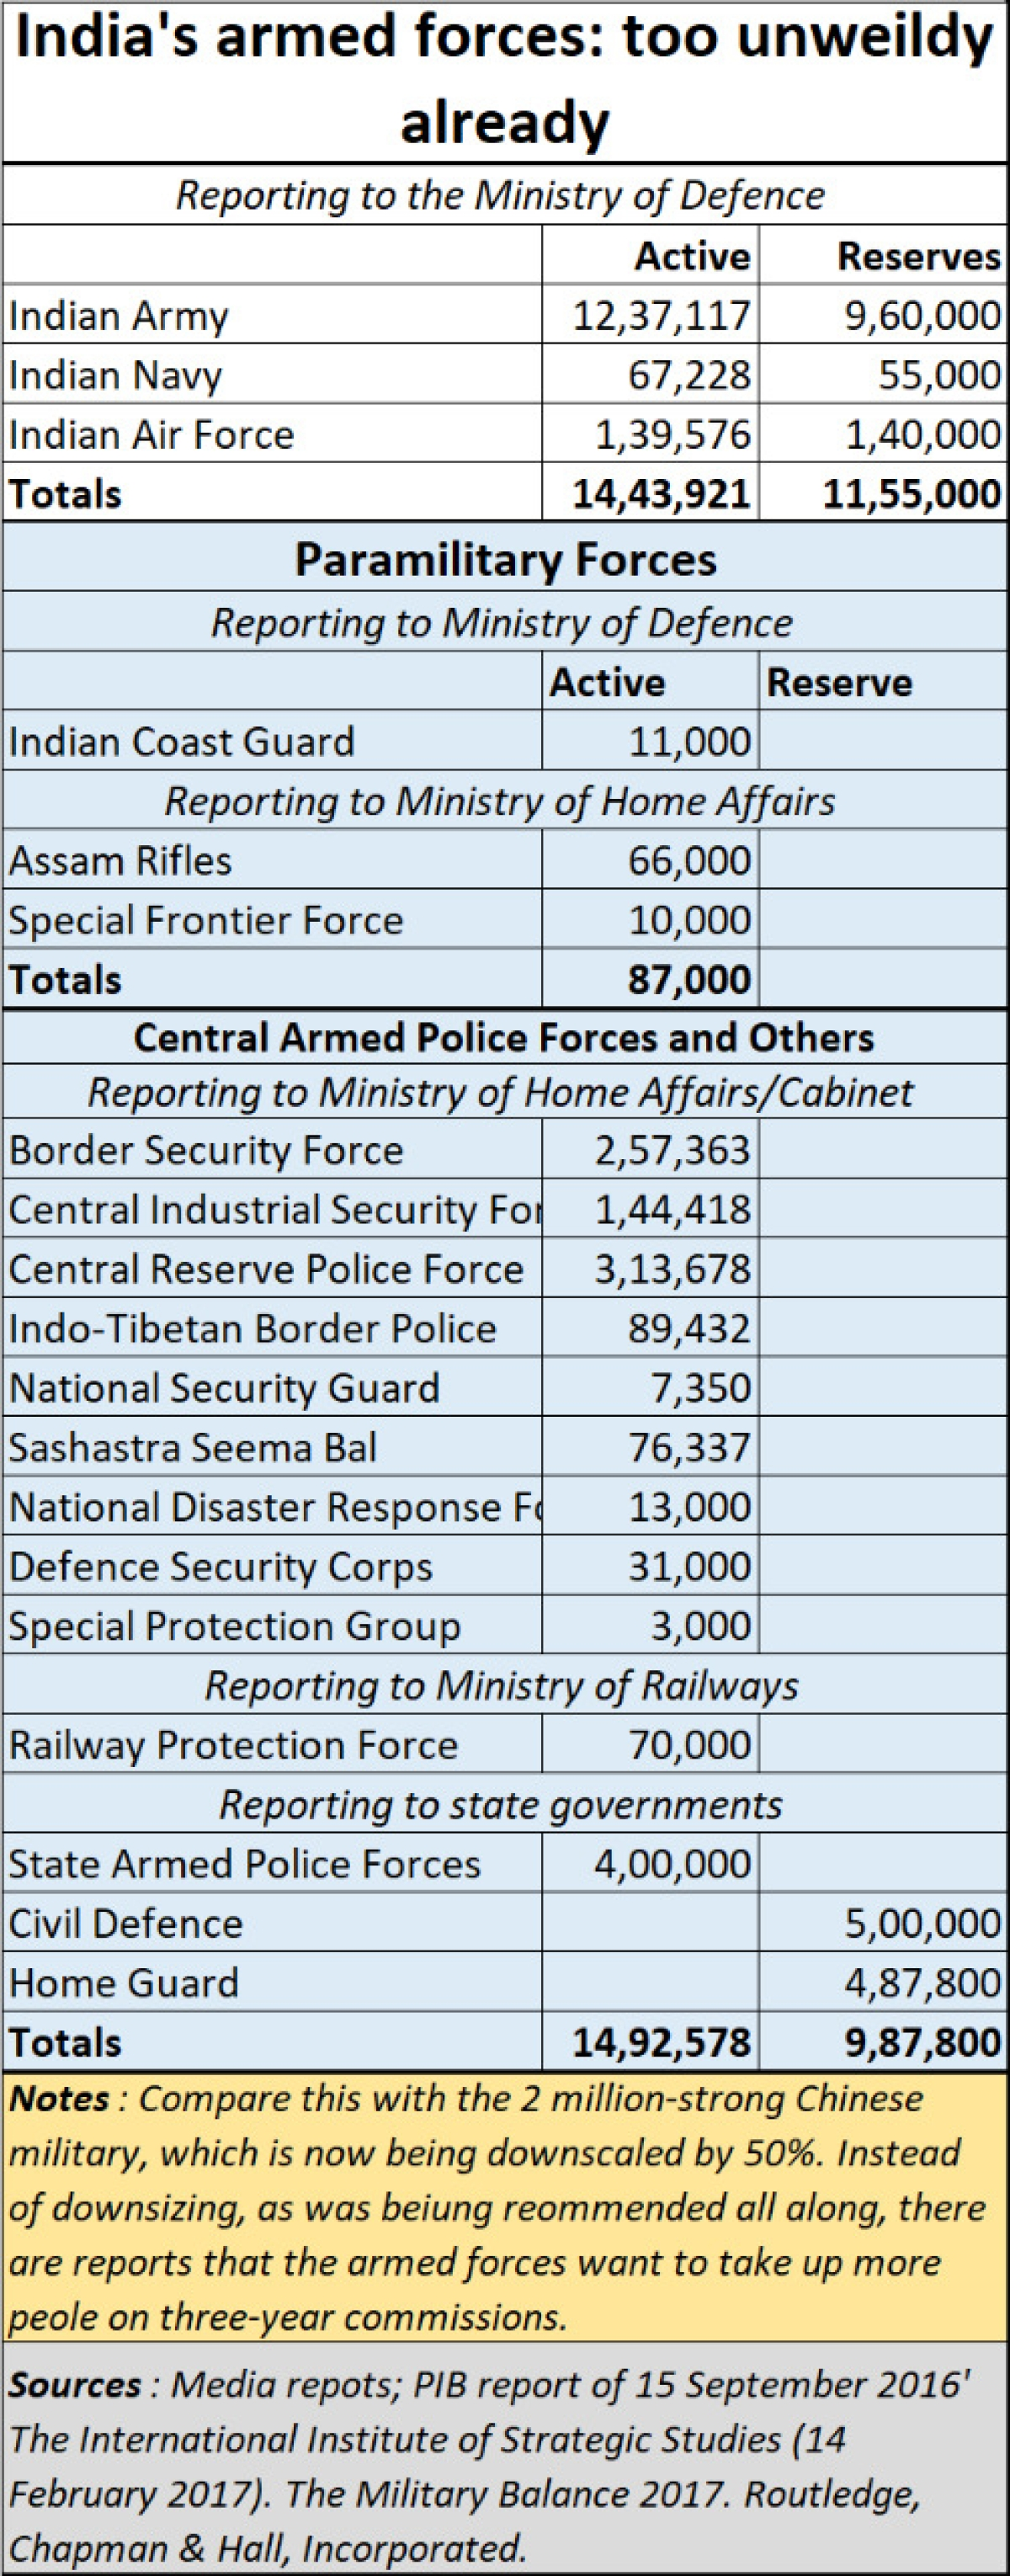 Are India's armed forces going to start employing youth once again?